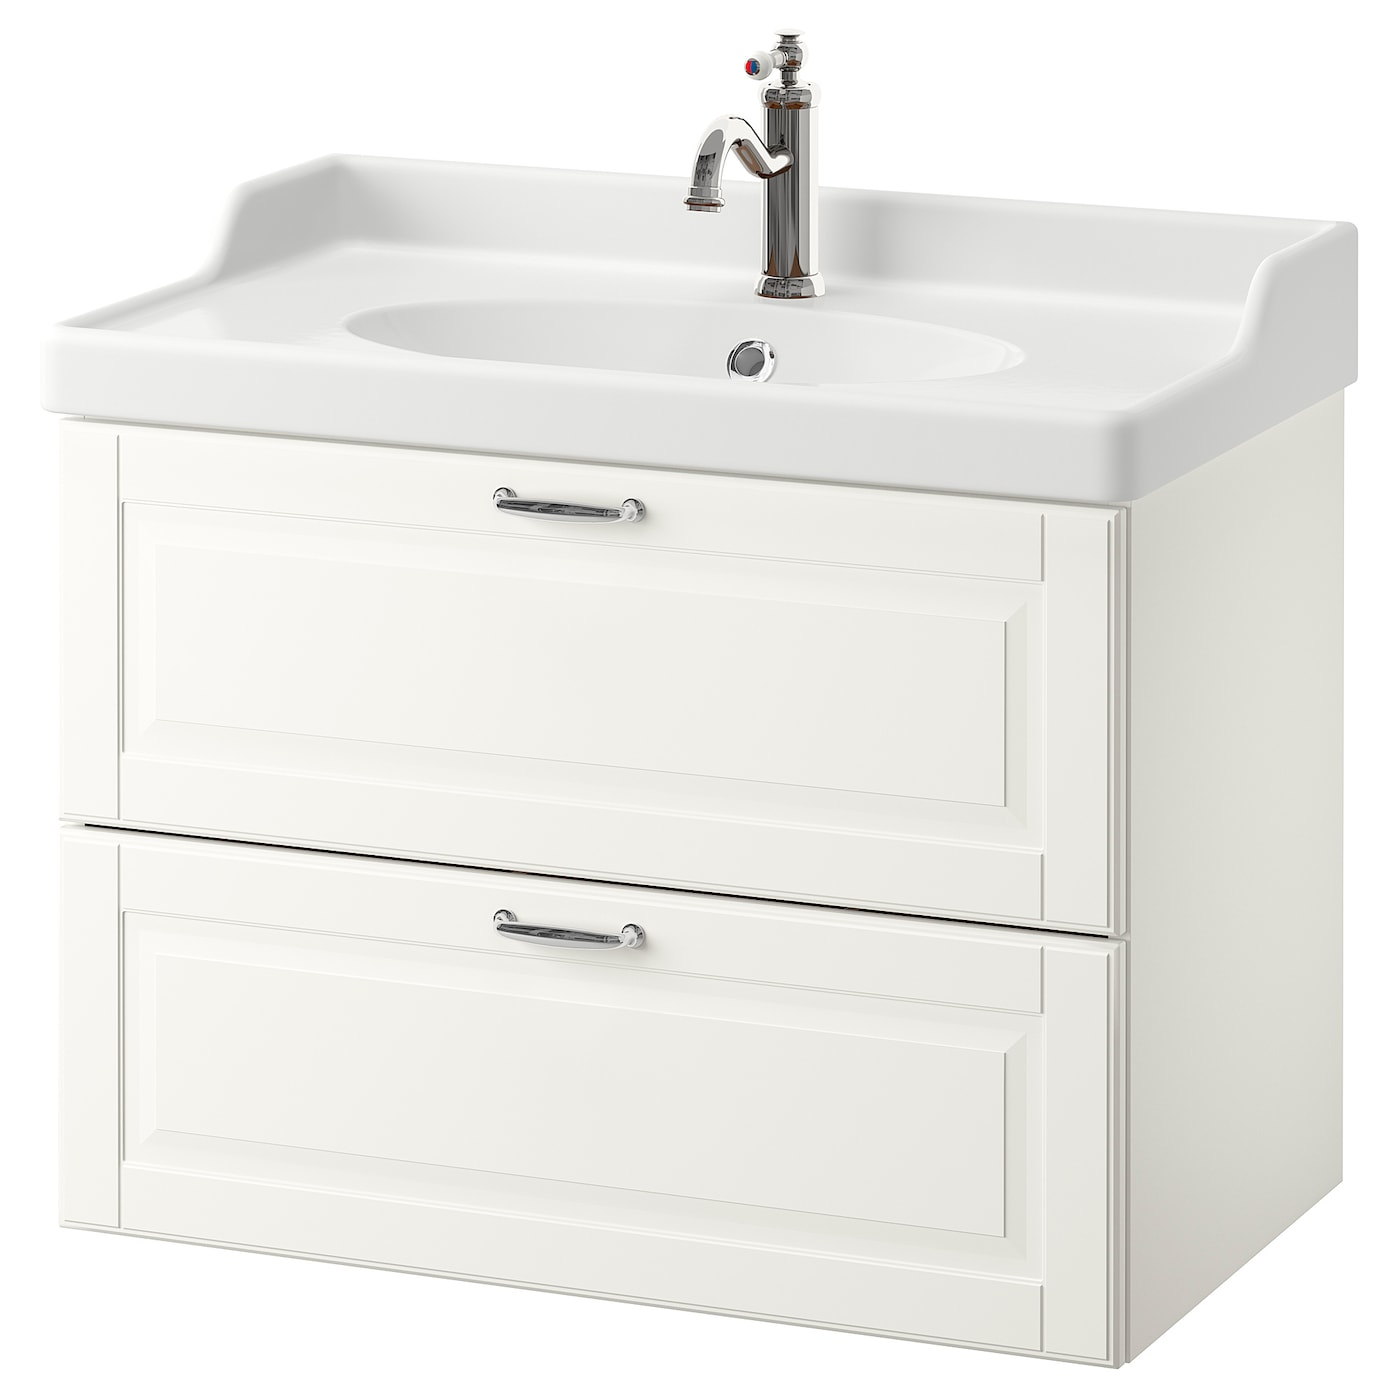 IKEA GODMORGON/RÄTTVIKEN wash-stand with 2 drawers